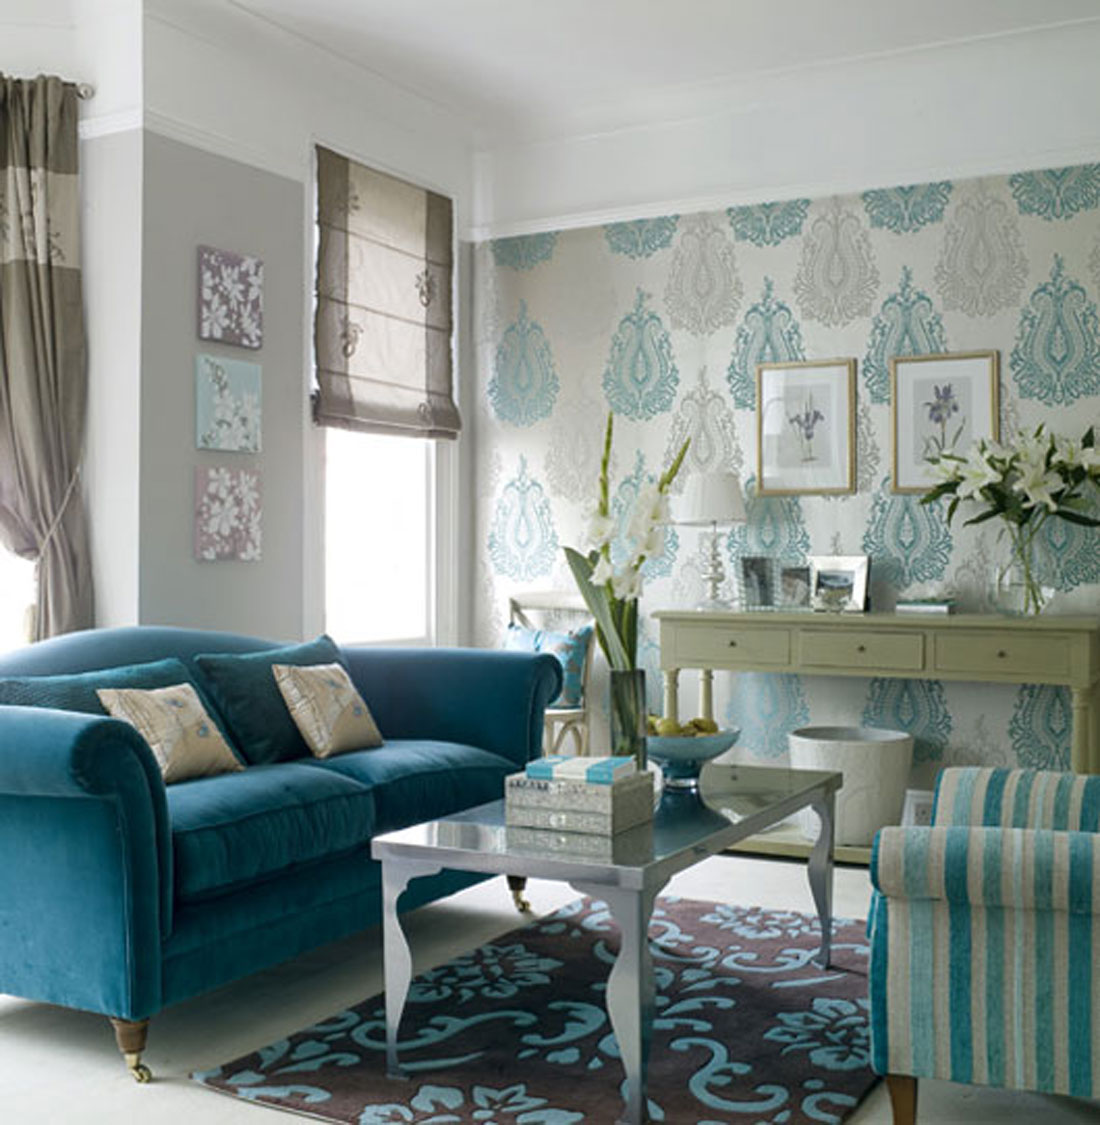 The Texture Of Teal And Turquoise A Bold And Beautiful Terrain My Decorative